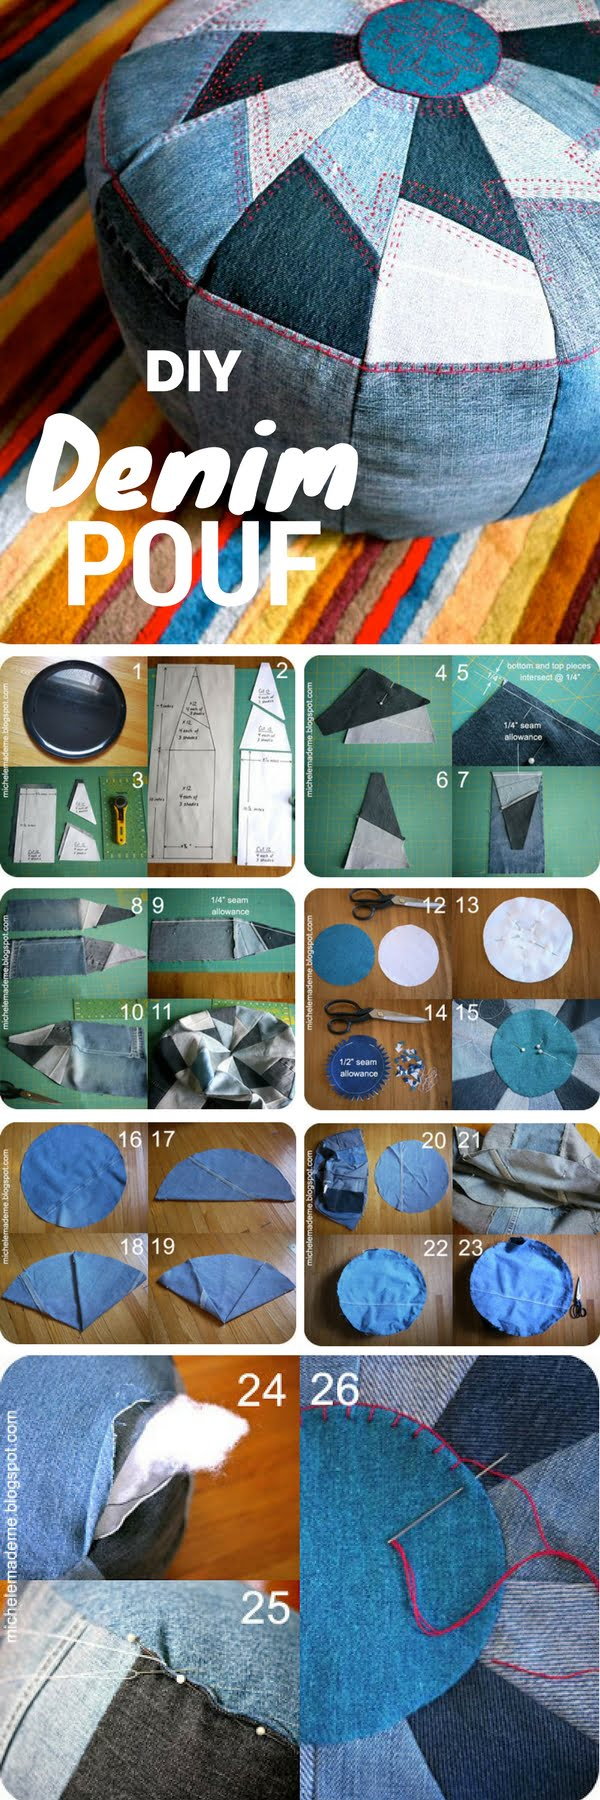 Check out the tutorial on how to make a DIY pouf from old jeans for home decor